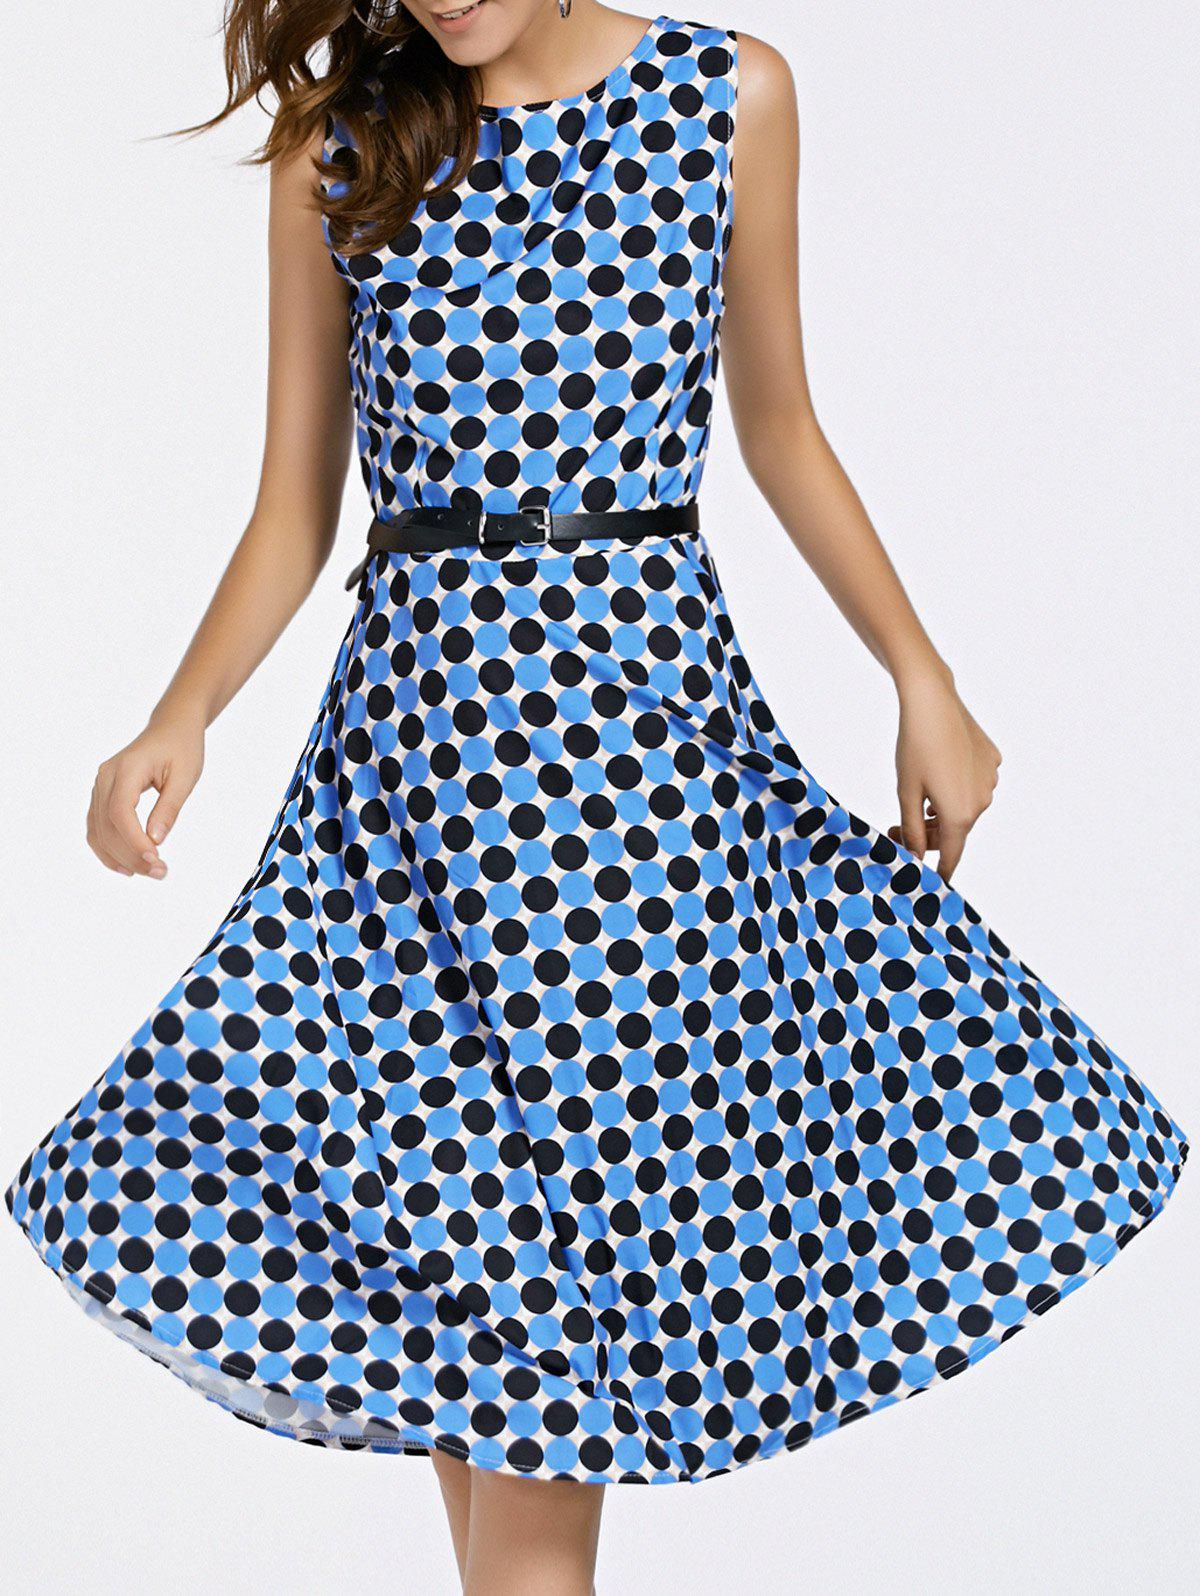 Retro Round Neck Sleeveless Polka Dot Print Women's Waist Slimming Dress - BLUE XL